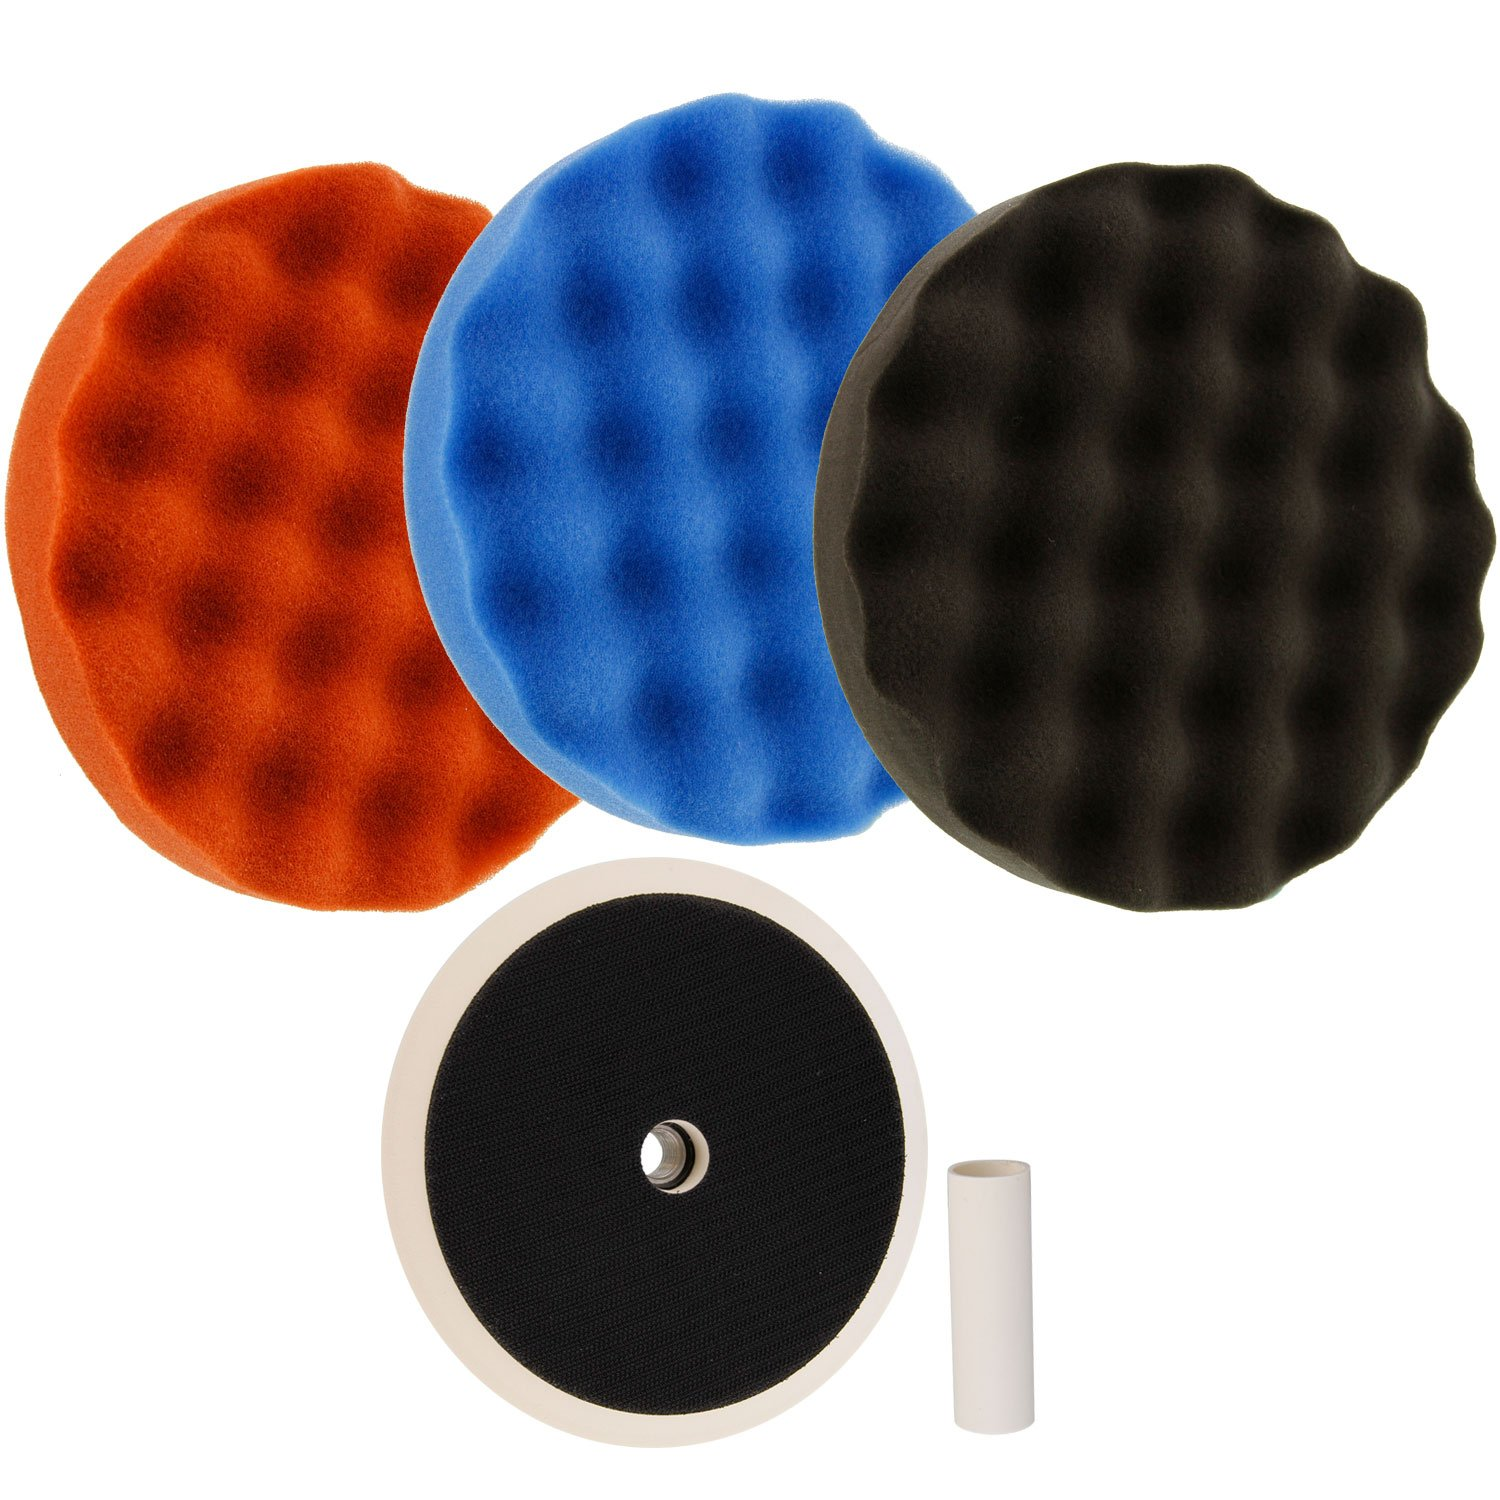 TCP Global Complete 3 Pad Buffing and Polishing Kit with 3 - 8'' Waffle Foam Grip Pads and a 5/8'' Threaded Polisher Grip Backing Plate